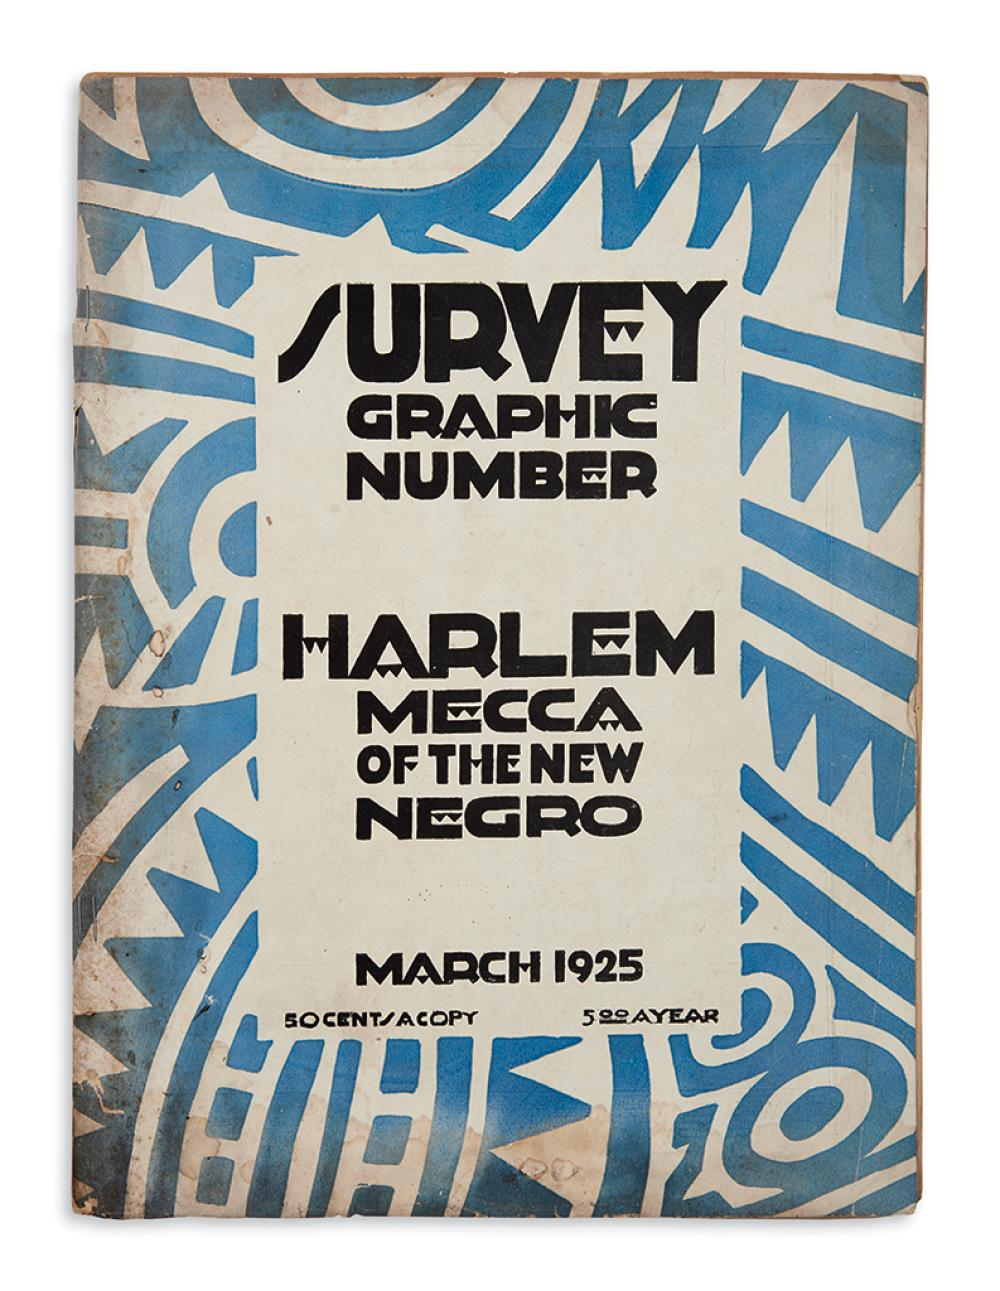 (LITERATURE.) Survey Graphic Number: Harlem, Mecca of the New Negro.